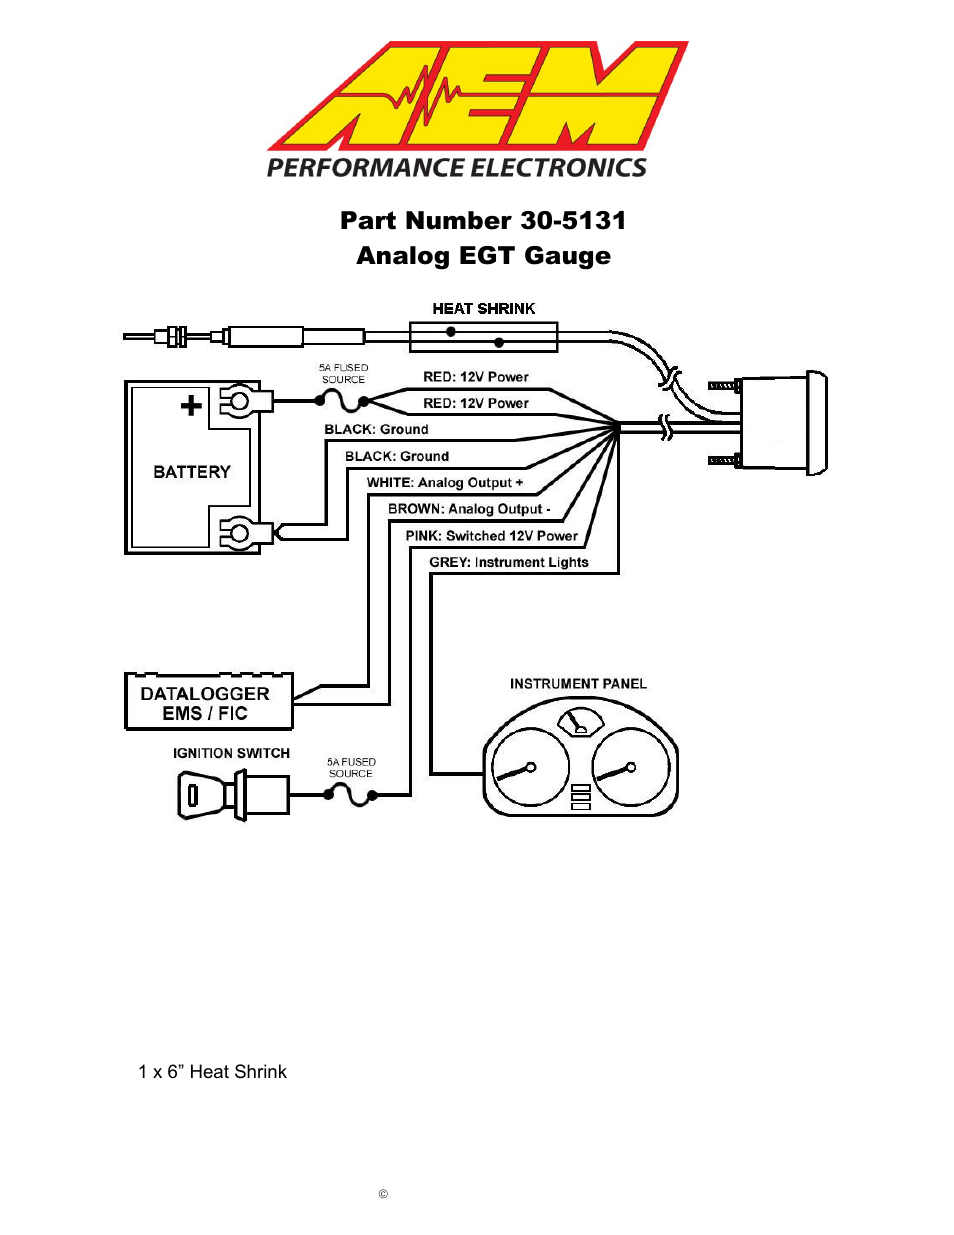 aem 30 5131m analog egt metric gauge page1 aem 30 5131m analog egt metric gauge user manual 7 pages also egt gauge wiring diagram at mifinder.co